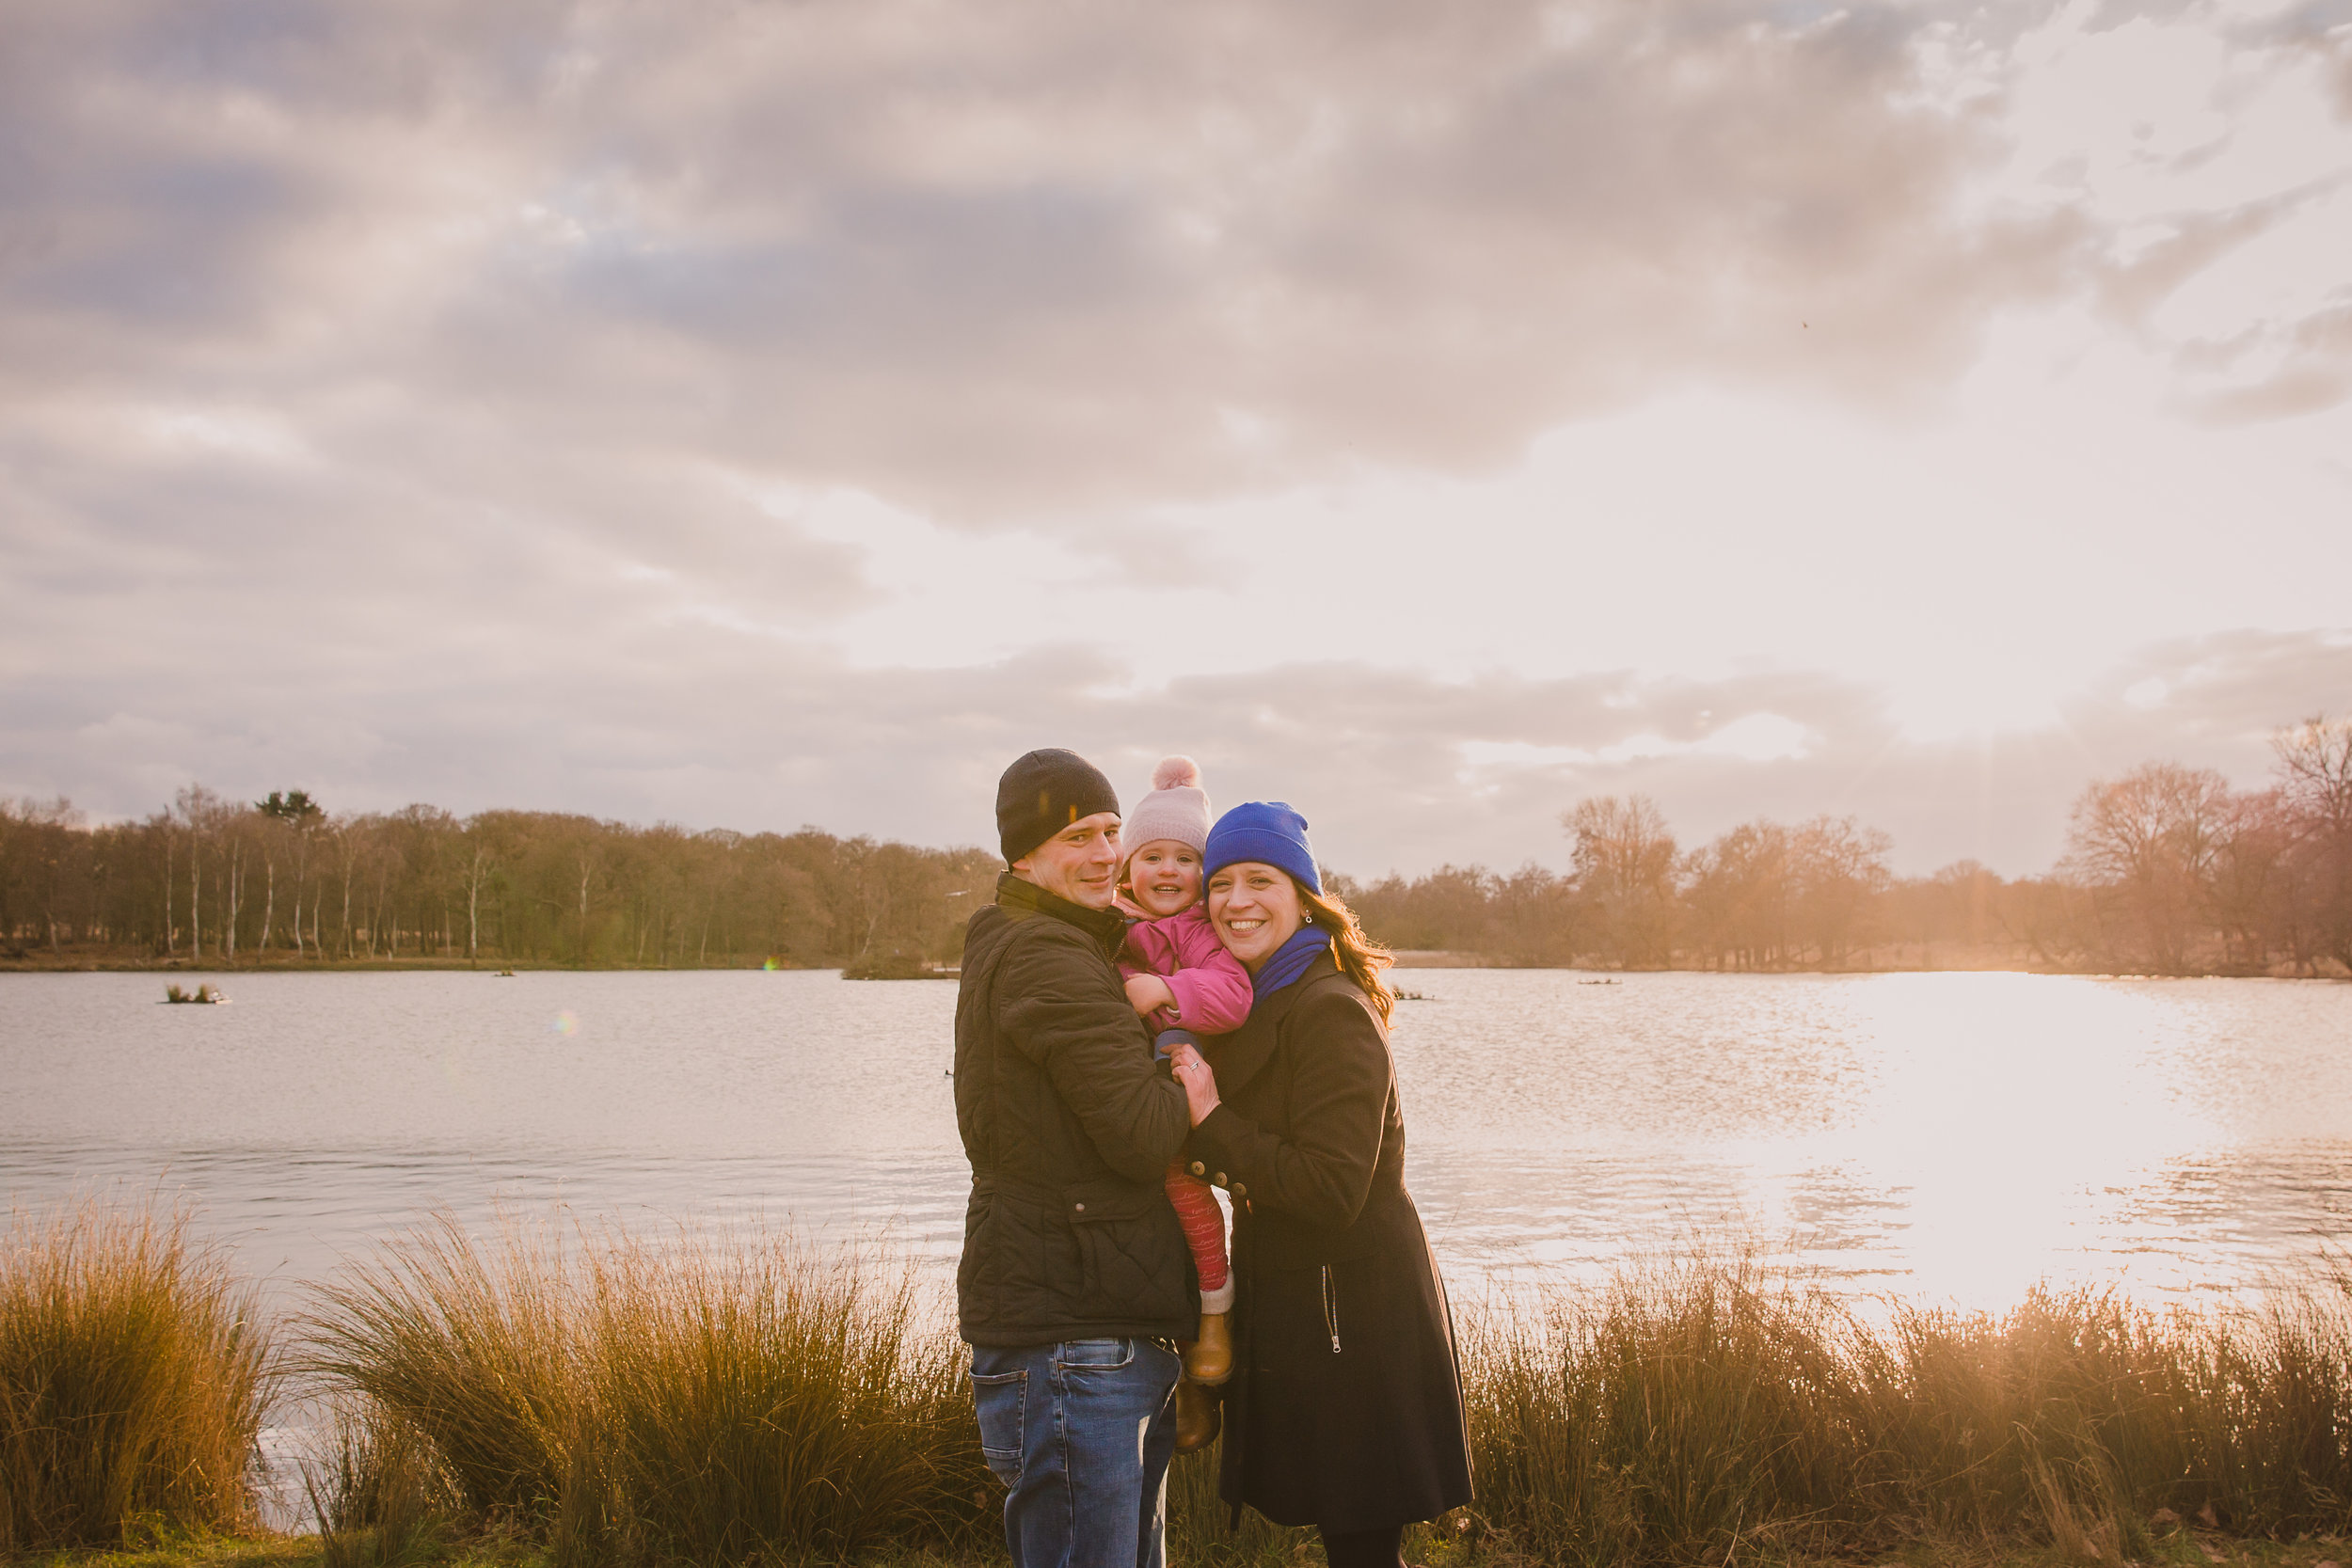 Family sunset photoshoot | London Lifestyle Photography